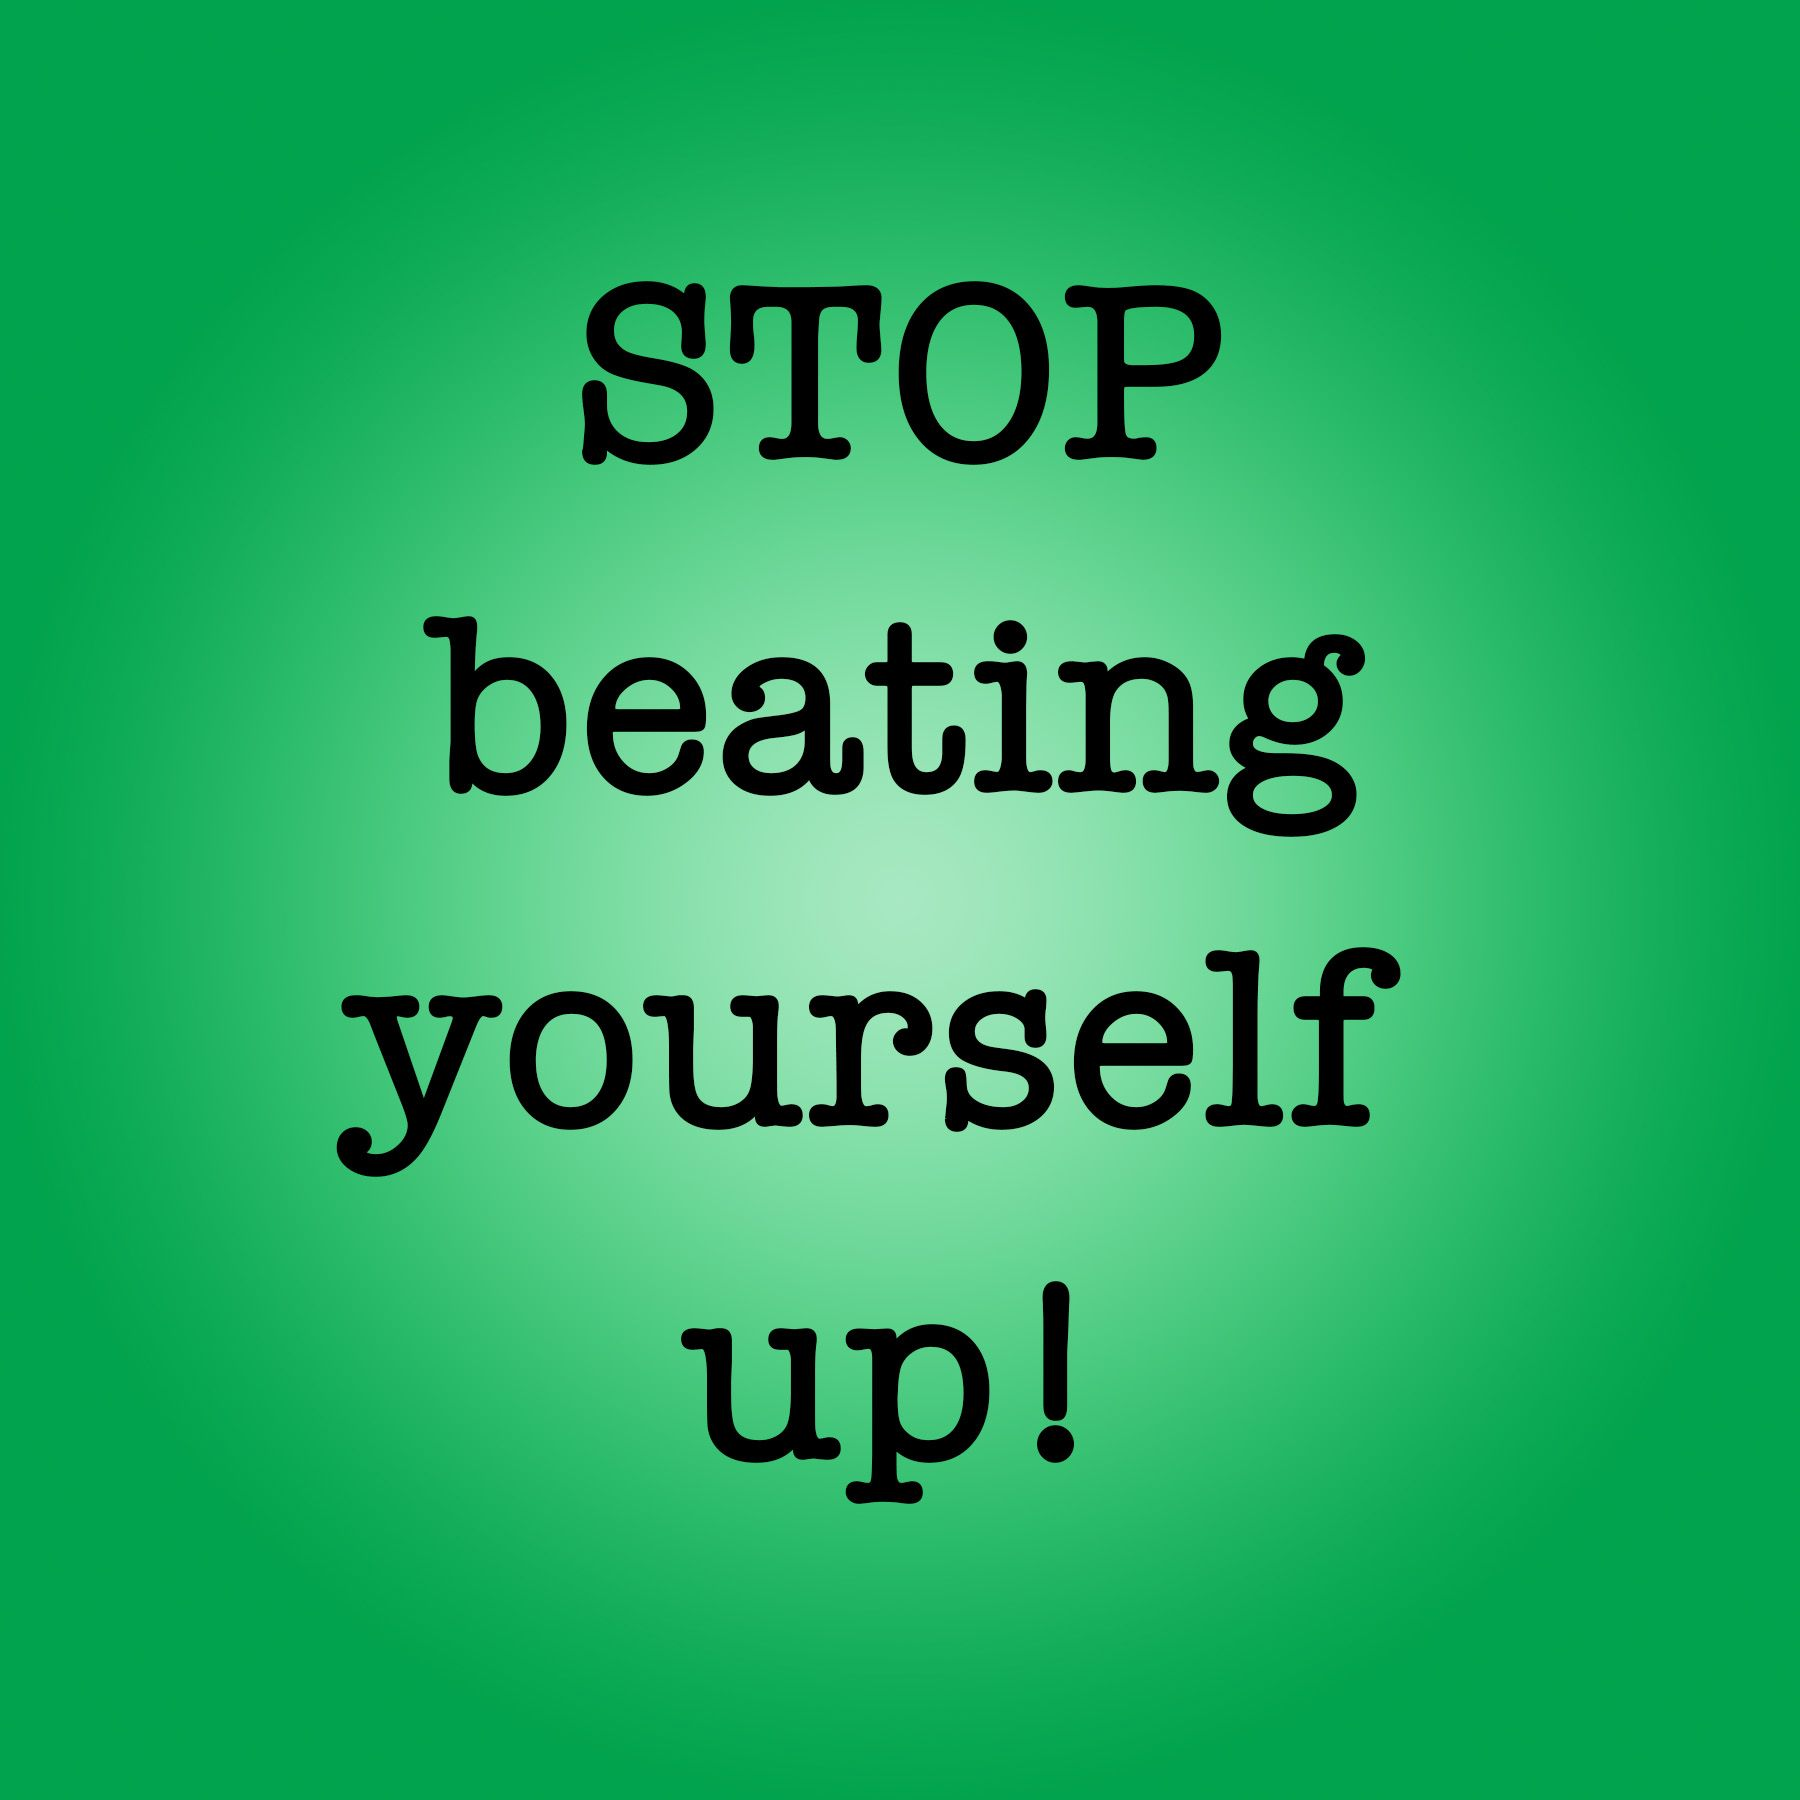 Blog Post: Stop Beating Yourself Up